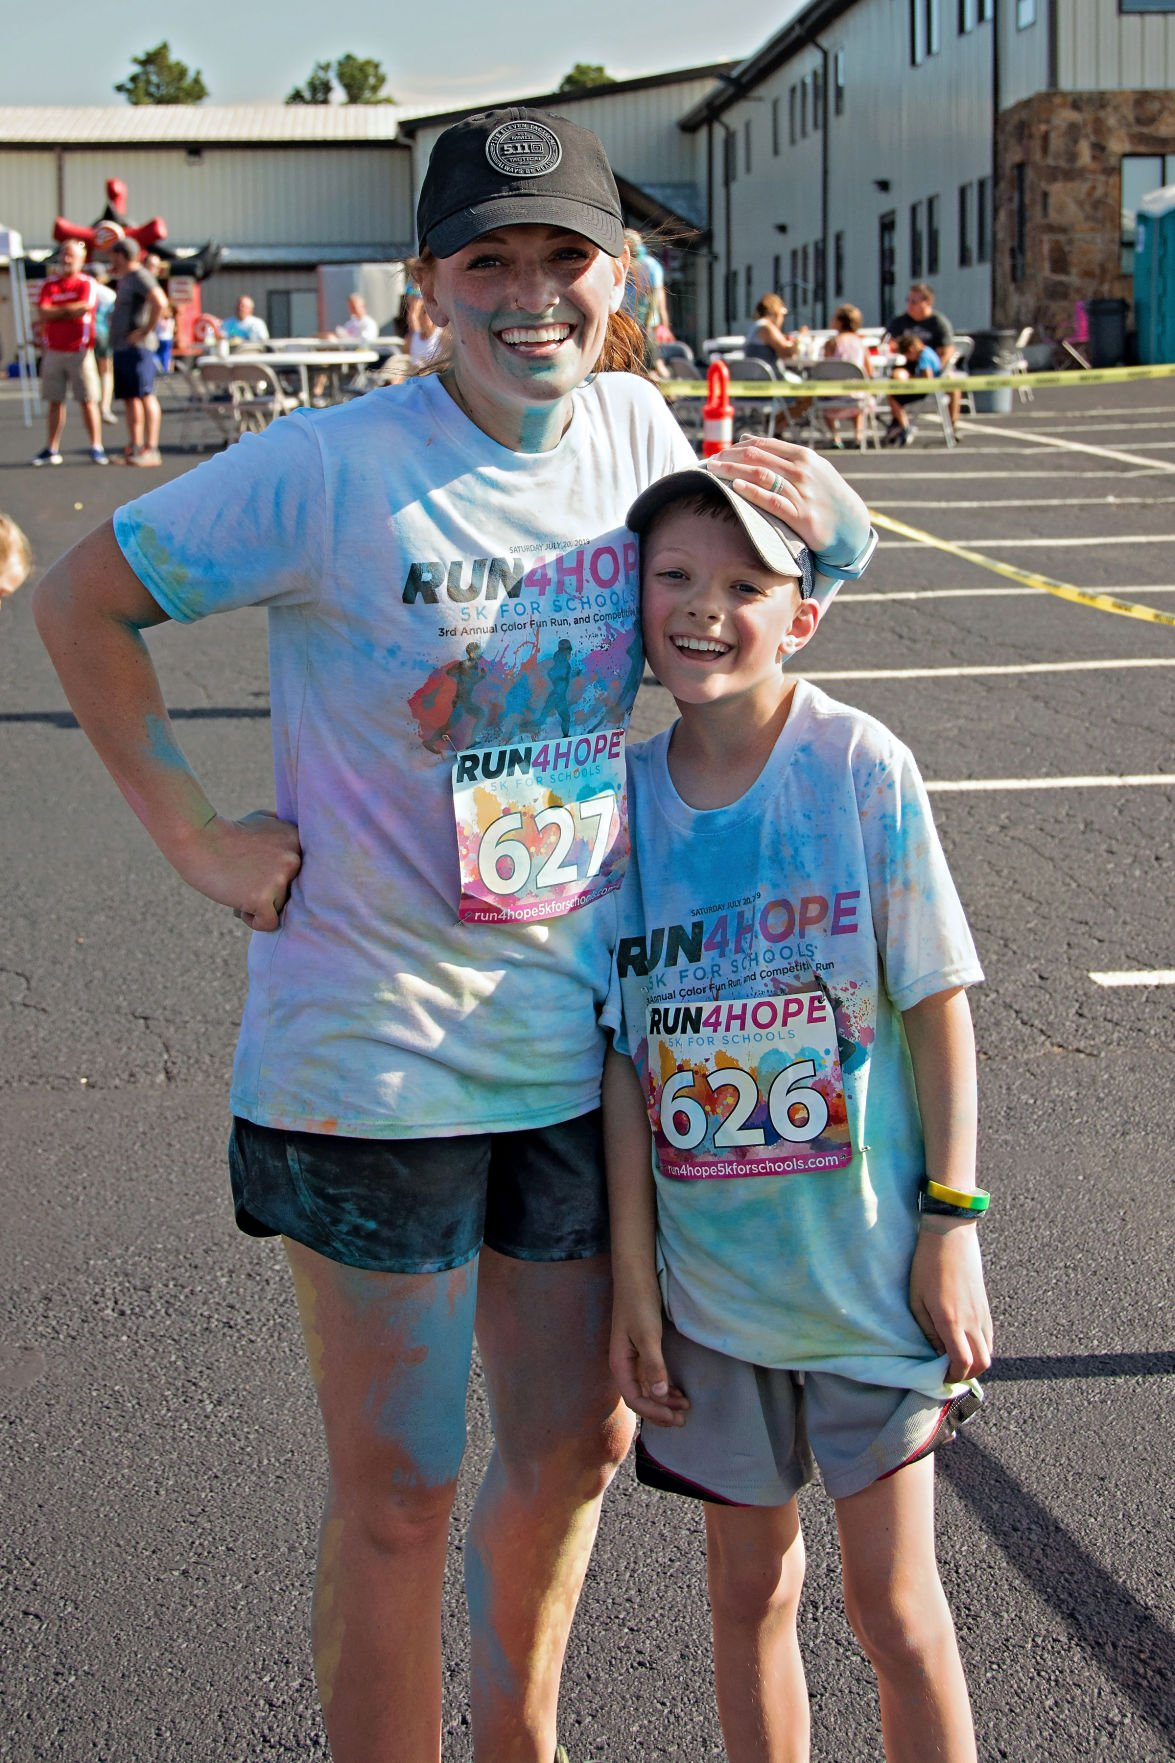 Color run raises funds, awareness for teen suicide prevention